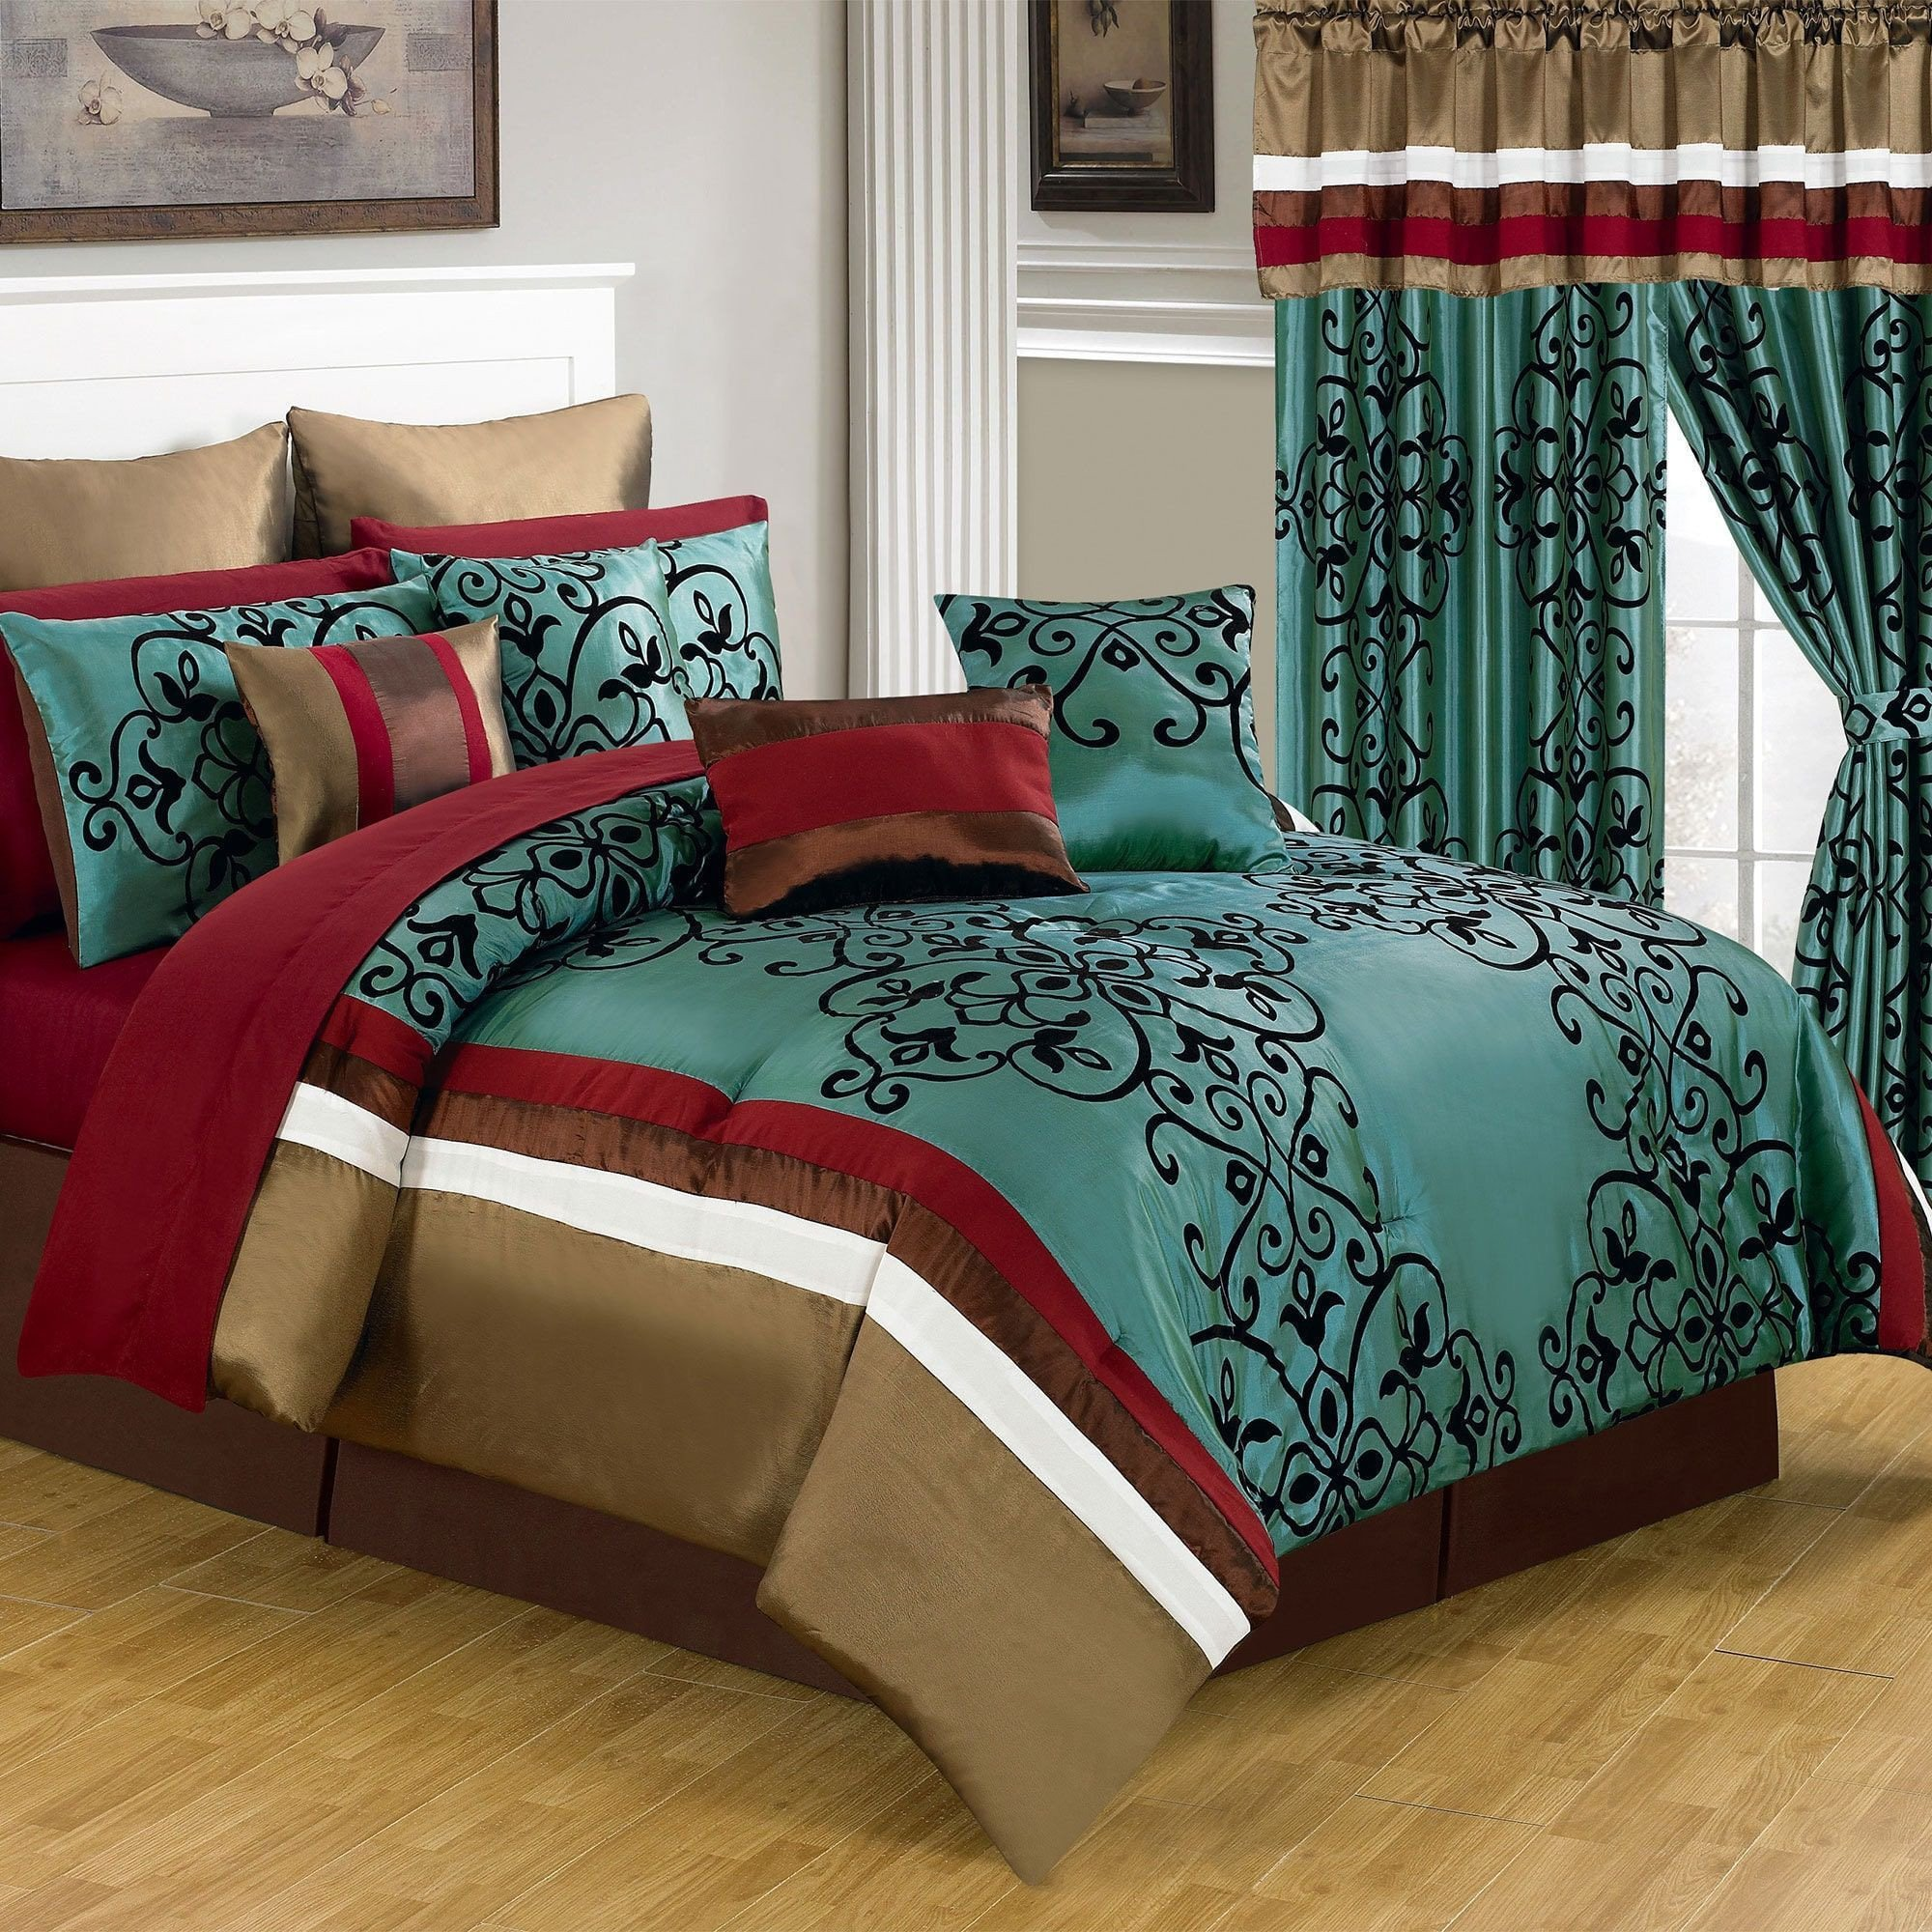 Bedroom In A Bag with Curtains Elegant Trademark Windsor Home Eve Room In A Bag Bedroom Set